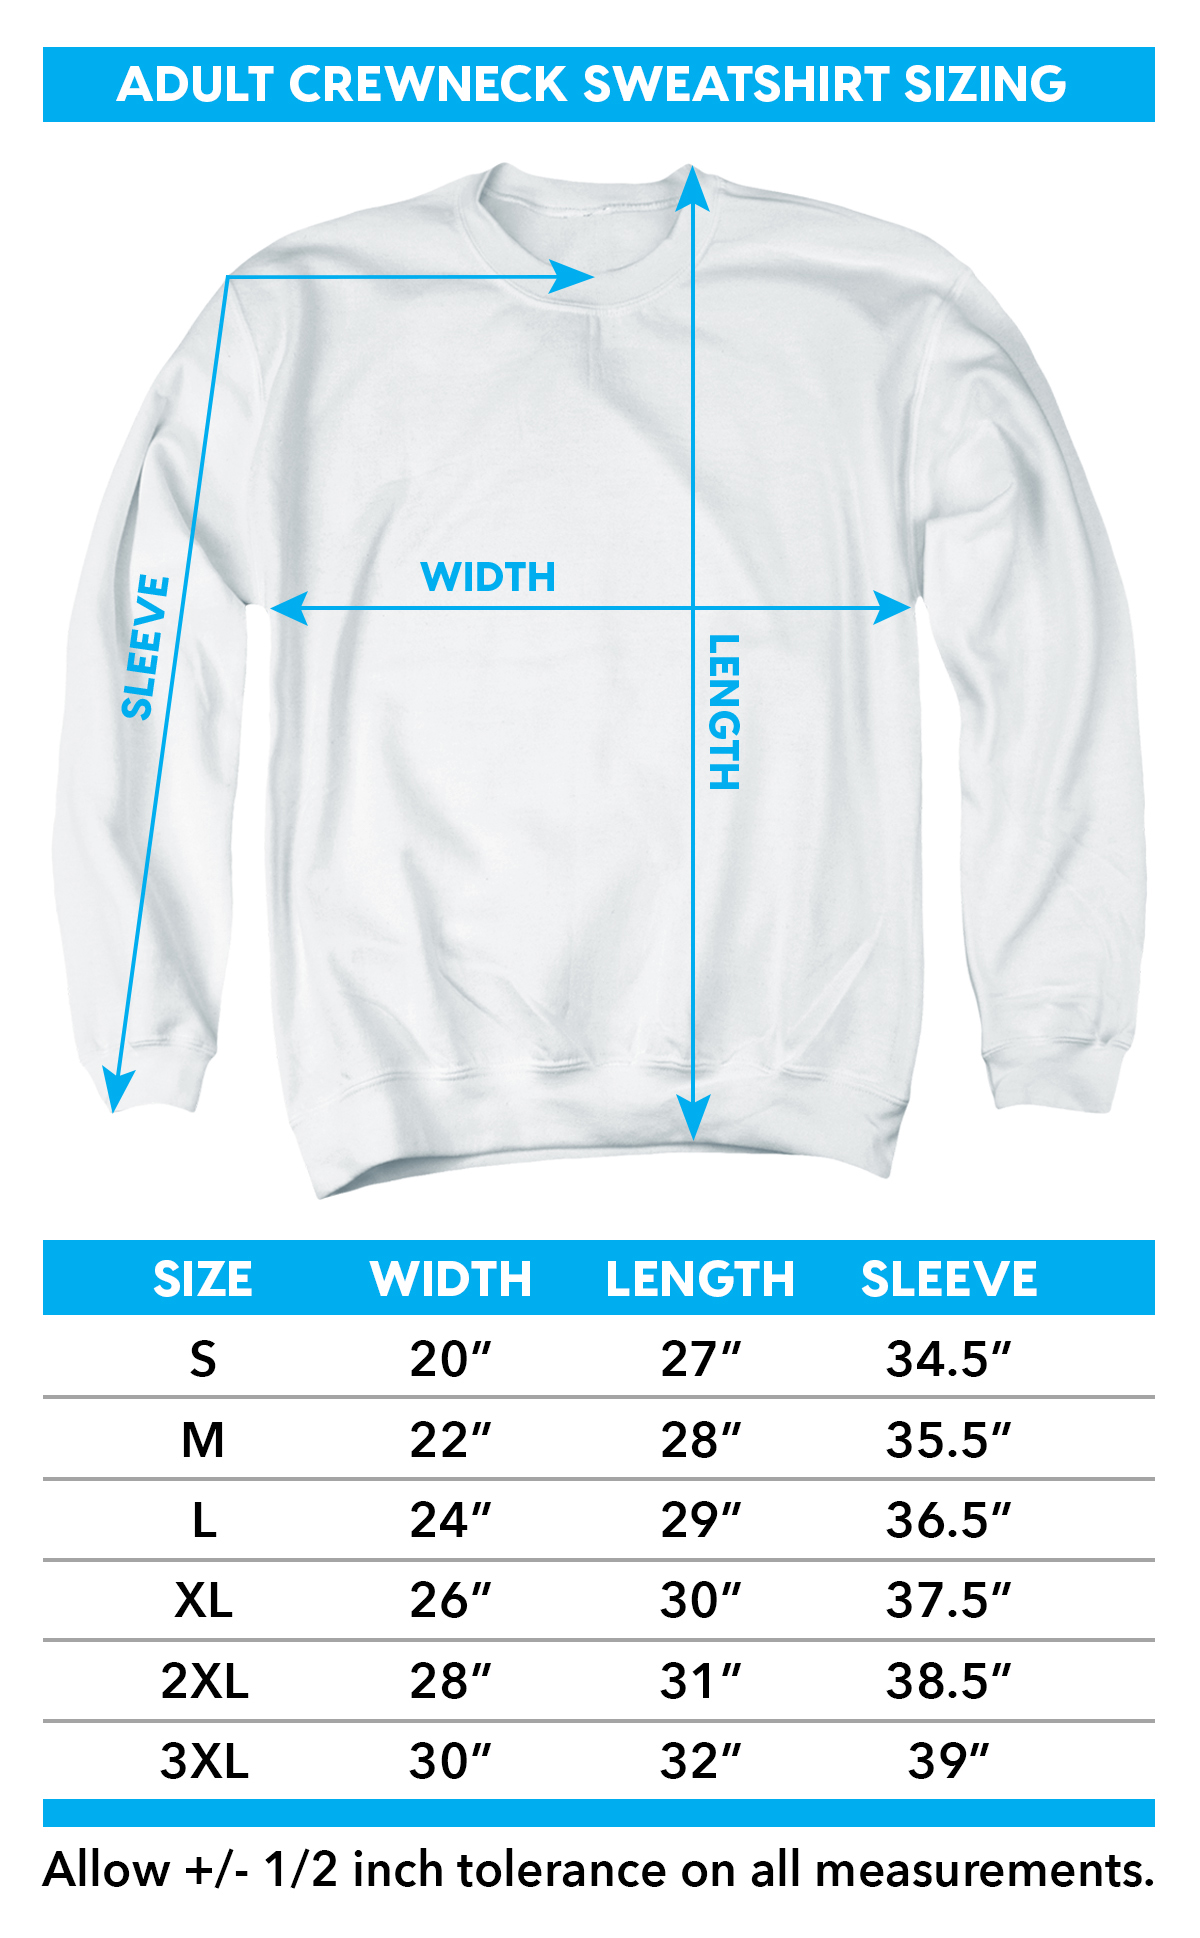 Sizing chart for the Rai Sword Drawn crewneck sweatshirt